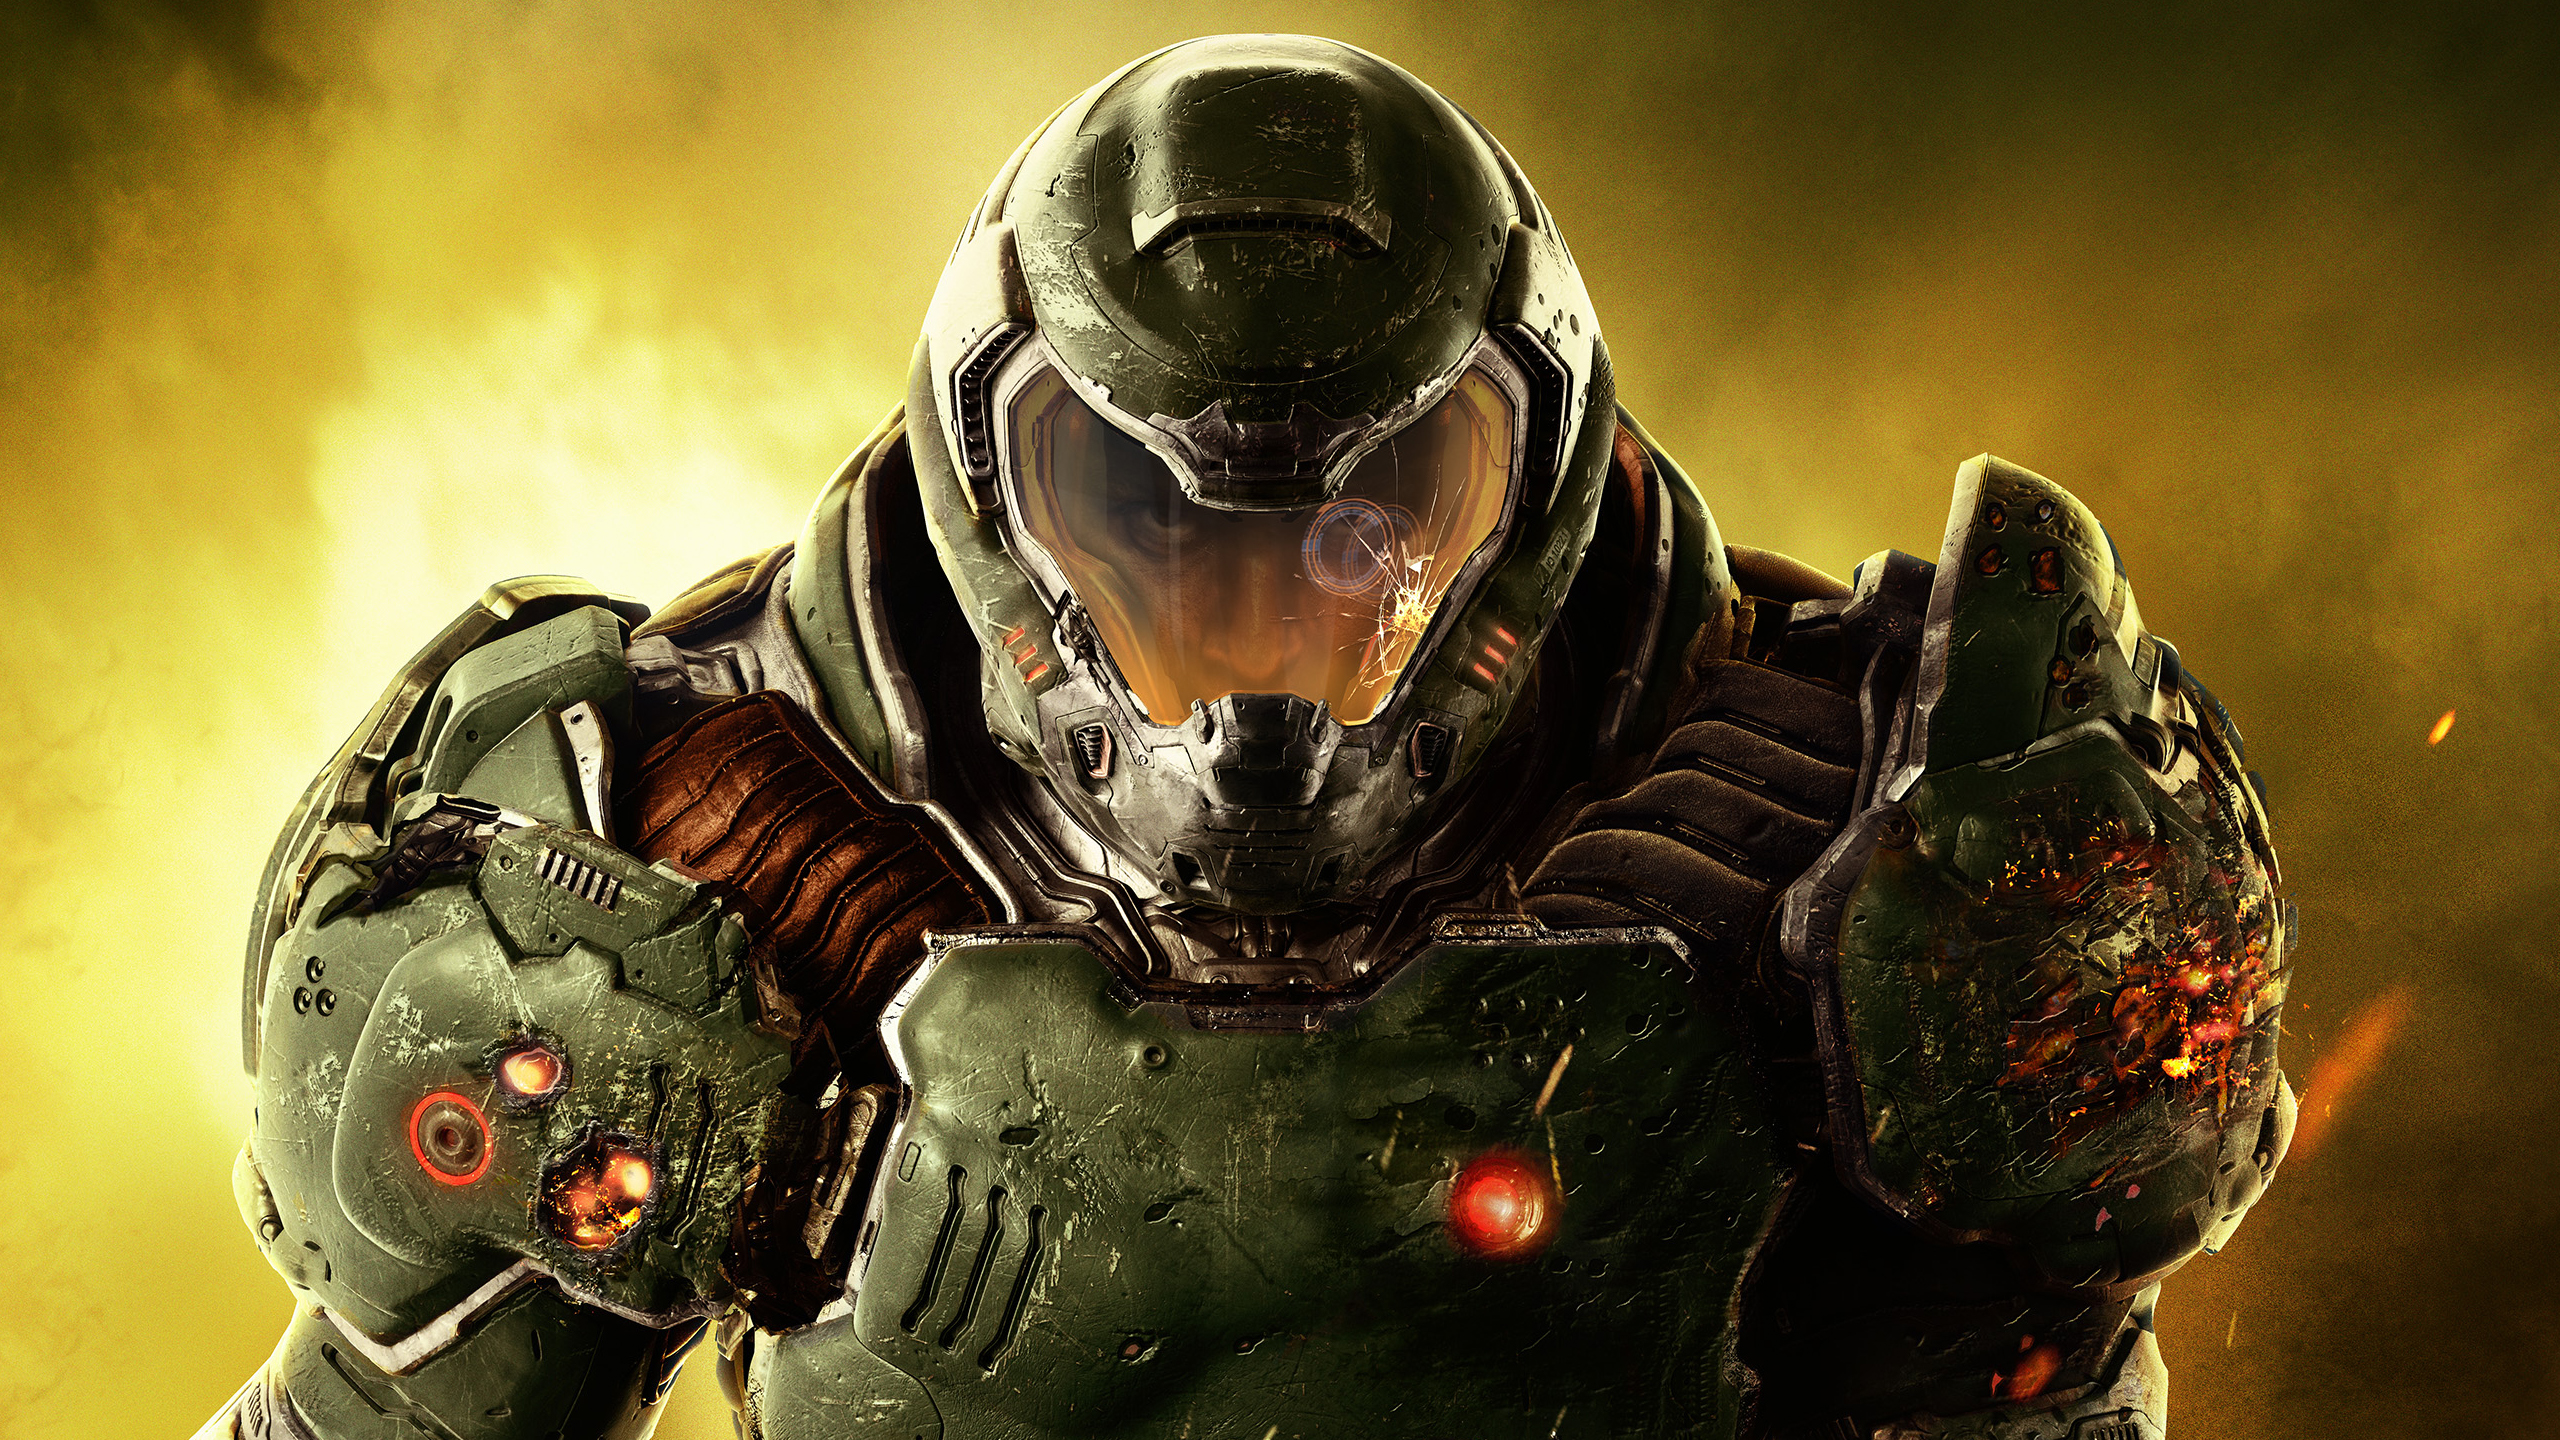 Doom 2016 Full Hd Wallpaper And Background 2560x1440